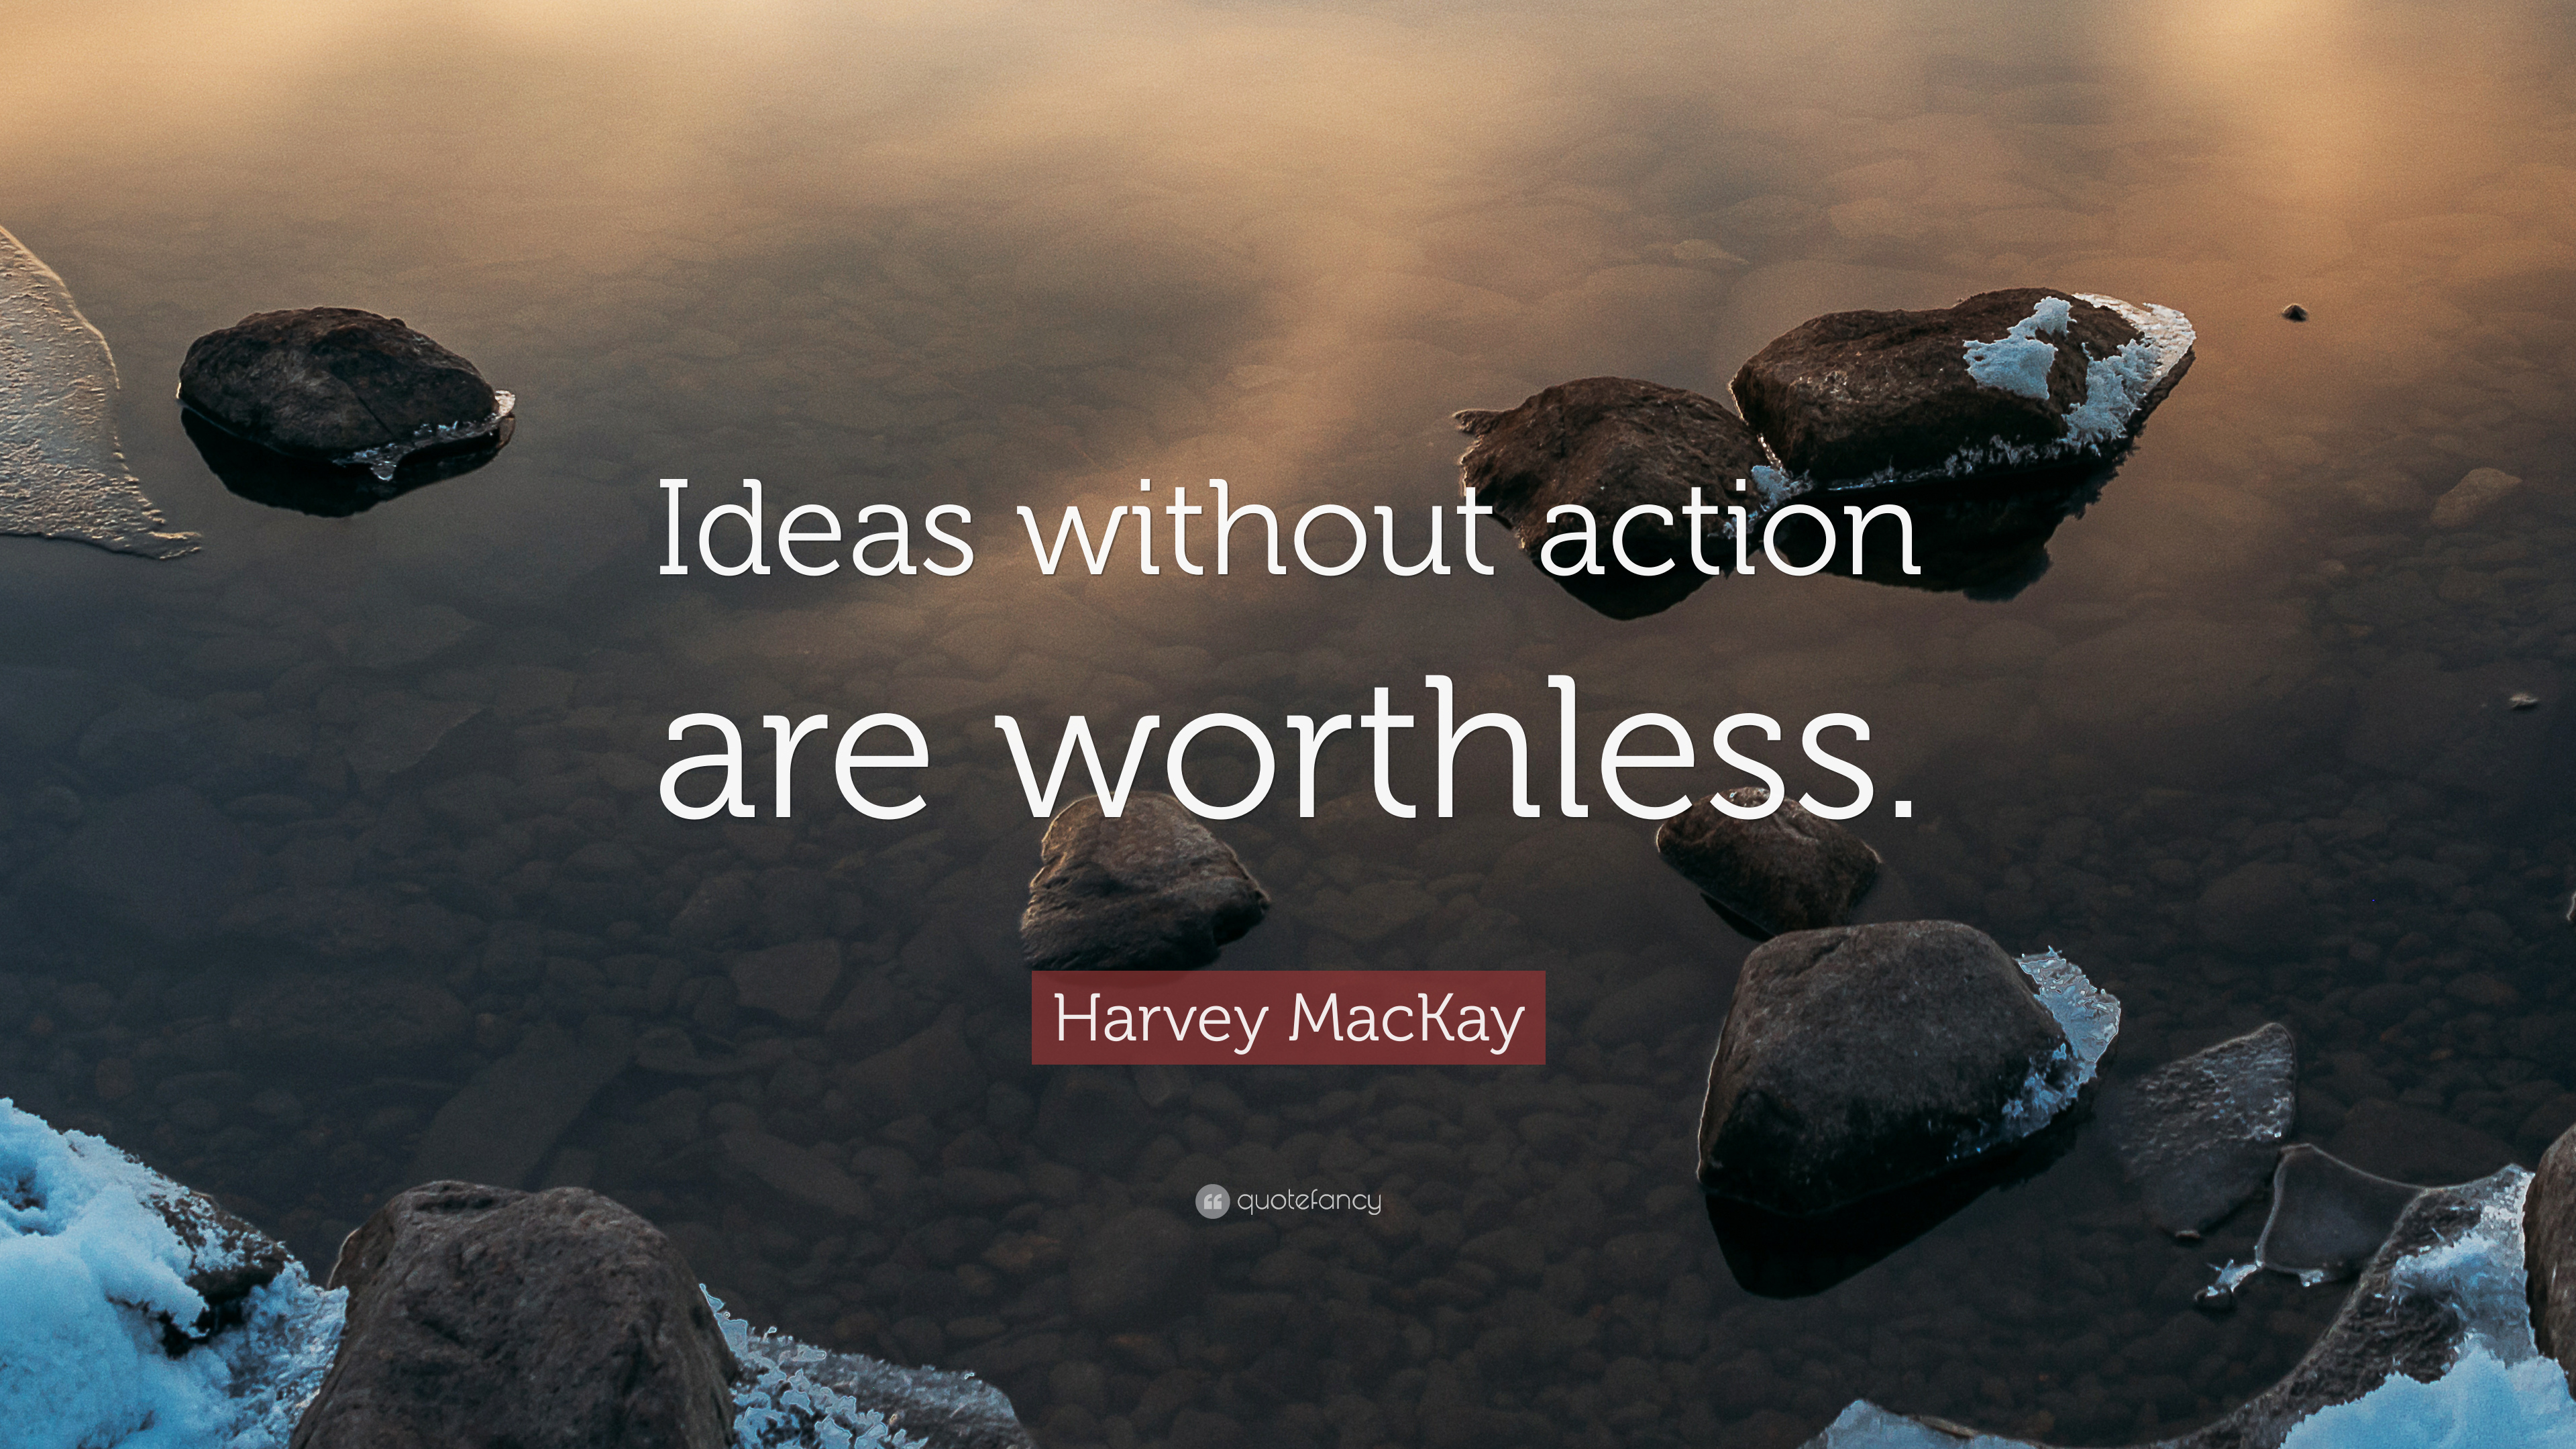 ideas without action are worthless essay help